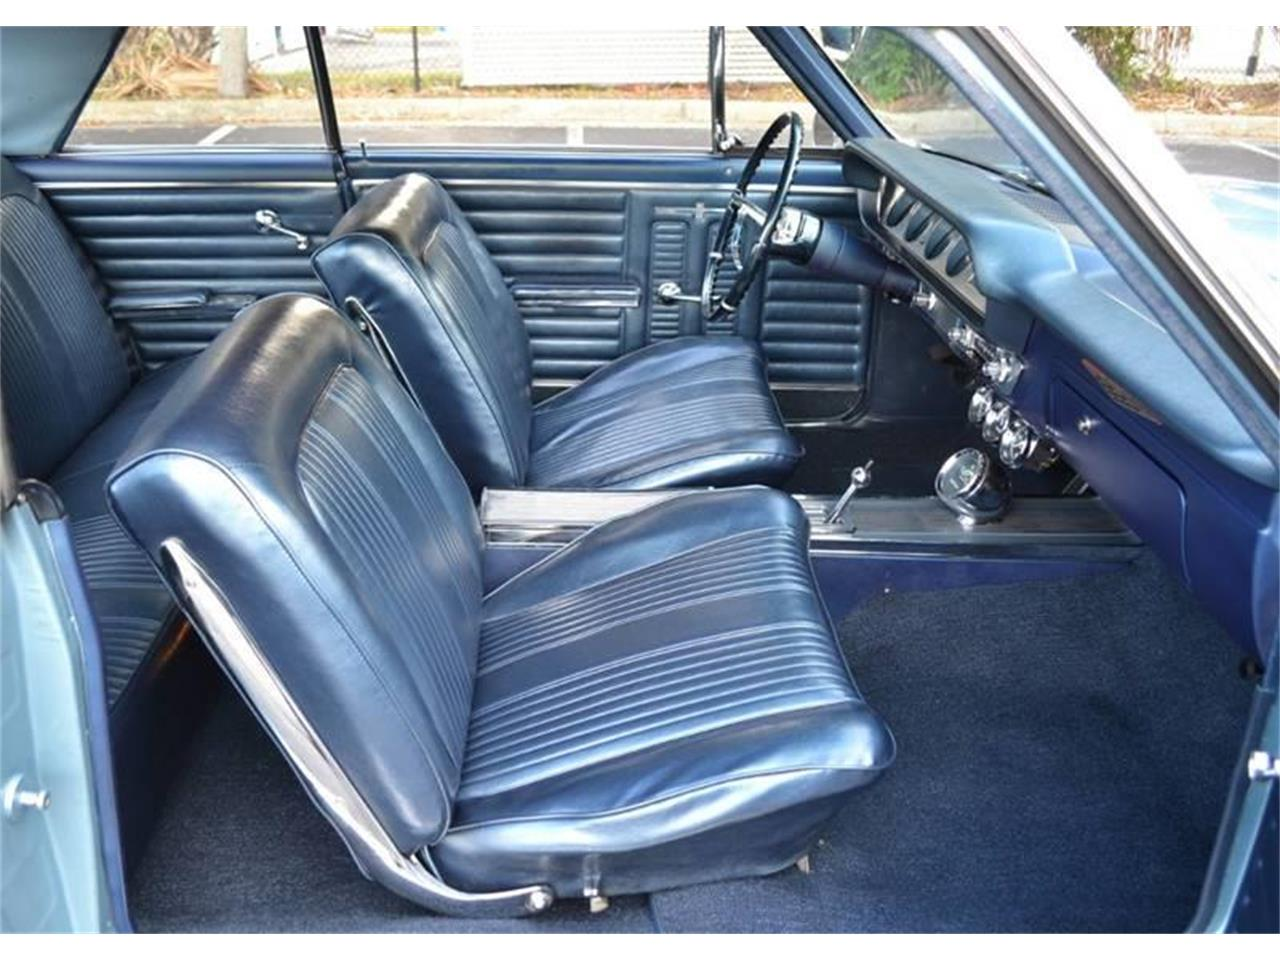 Large Picture of Classic 1964 GTO located in Clearwater Florida - $44,900.00 Offered by PJ's Auto World - OTUJ